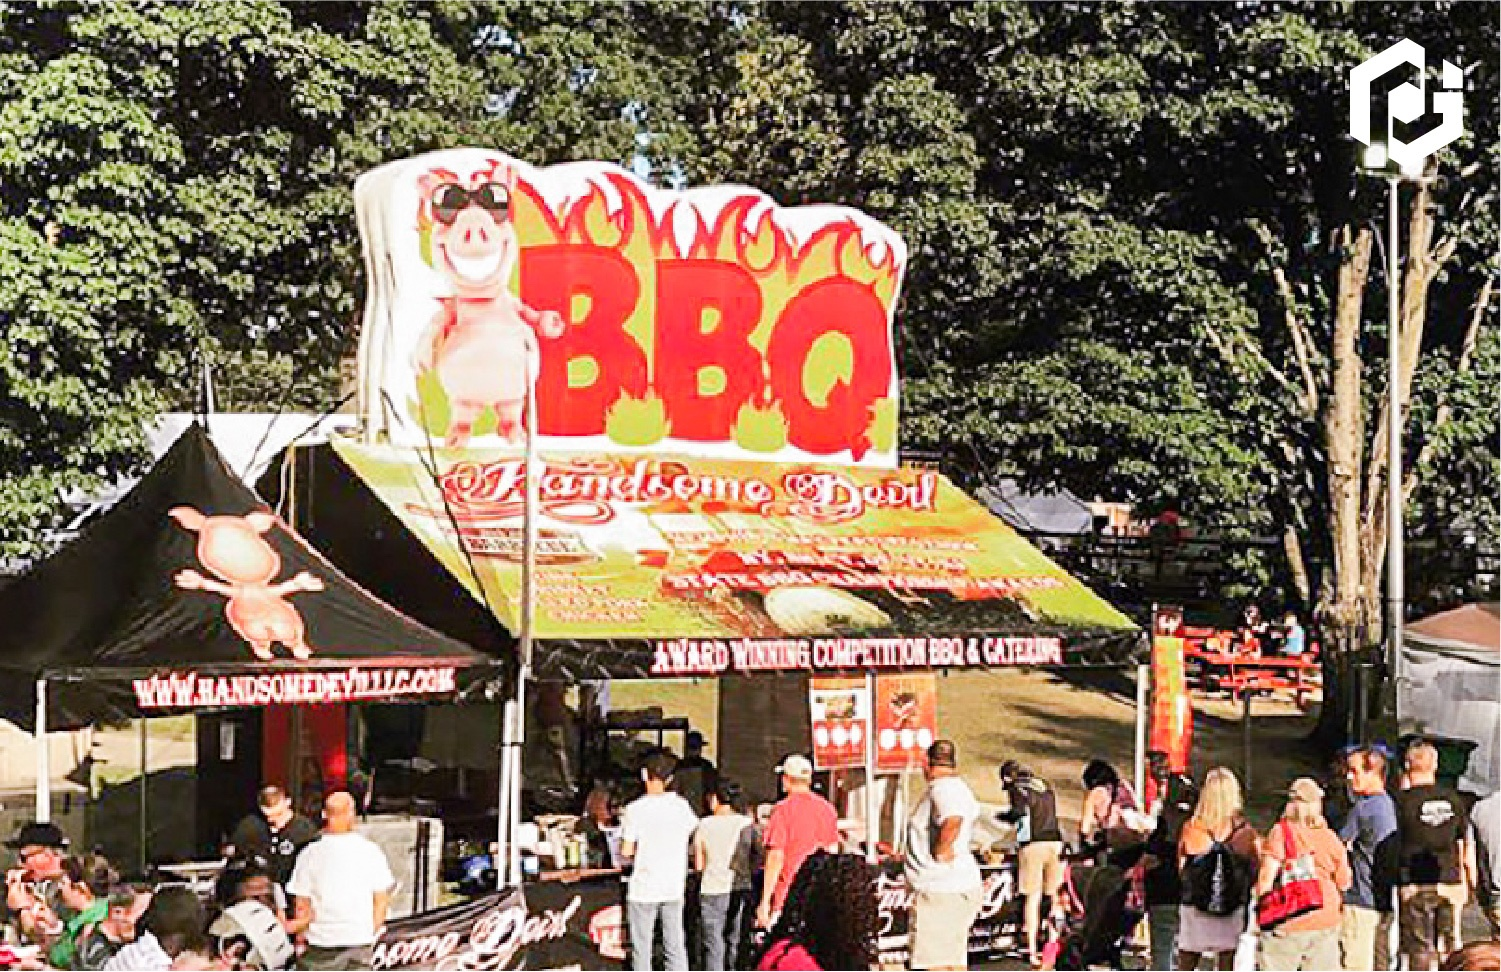 20x20-tent-for-bbq-01.jpg